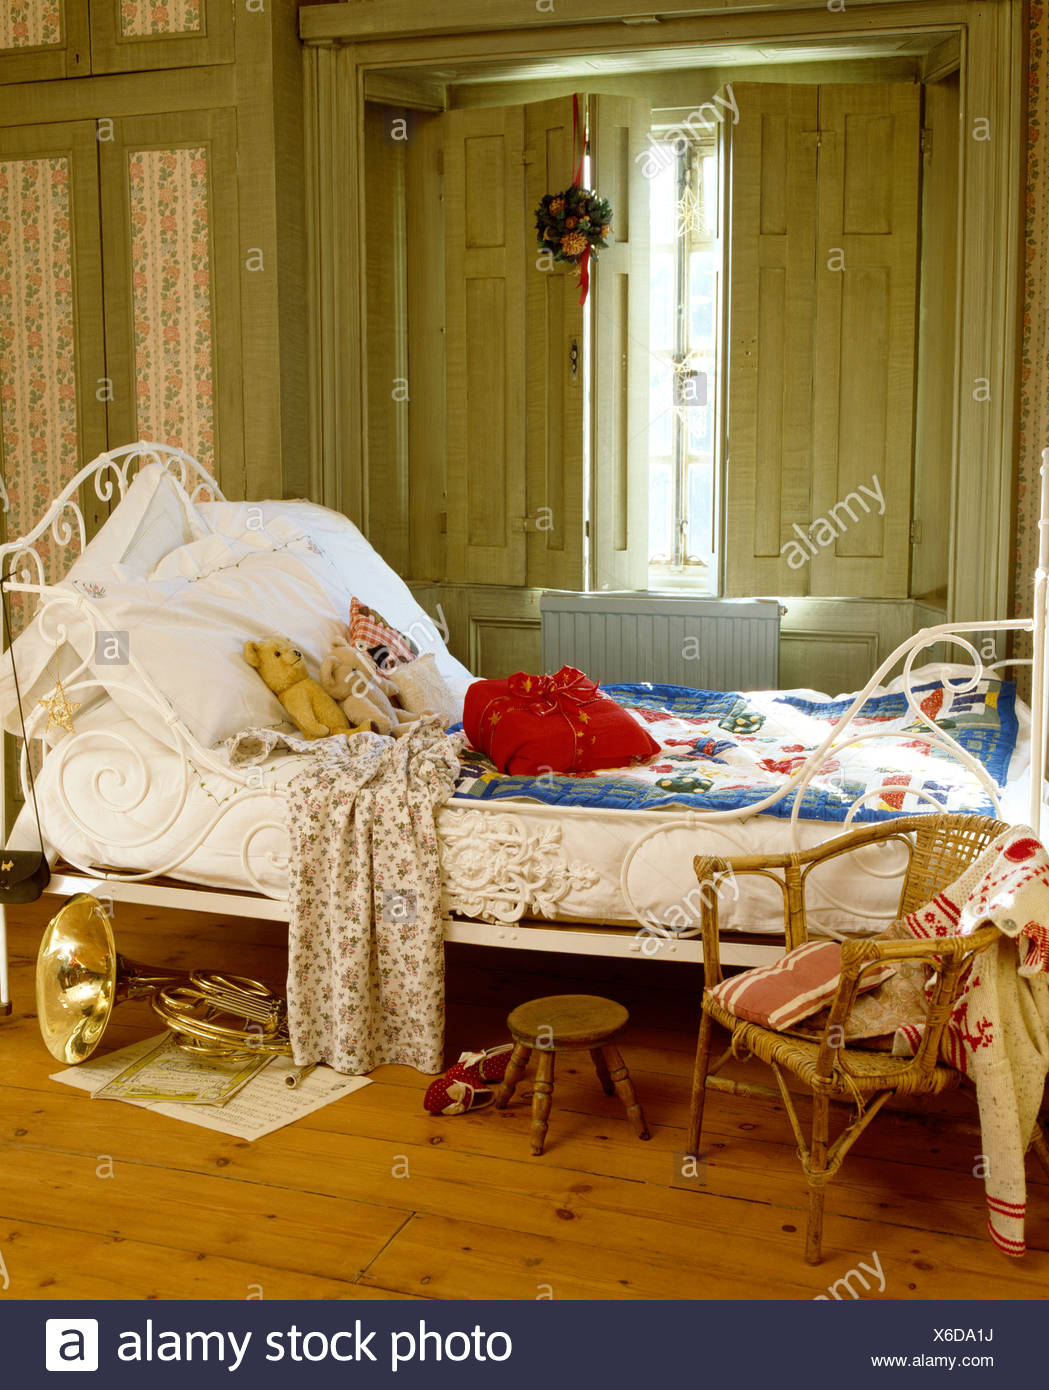 Picture of: White Pillows And Blue Quilt On Antique Wrought Iron Bed In Front Of Window With Painted Shutters In Child S Bedroom Stock Photo Alamy